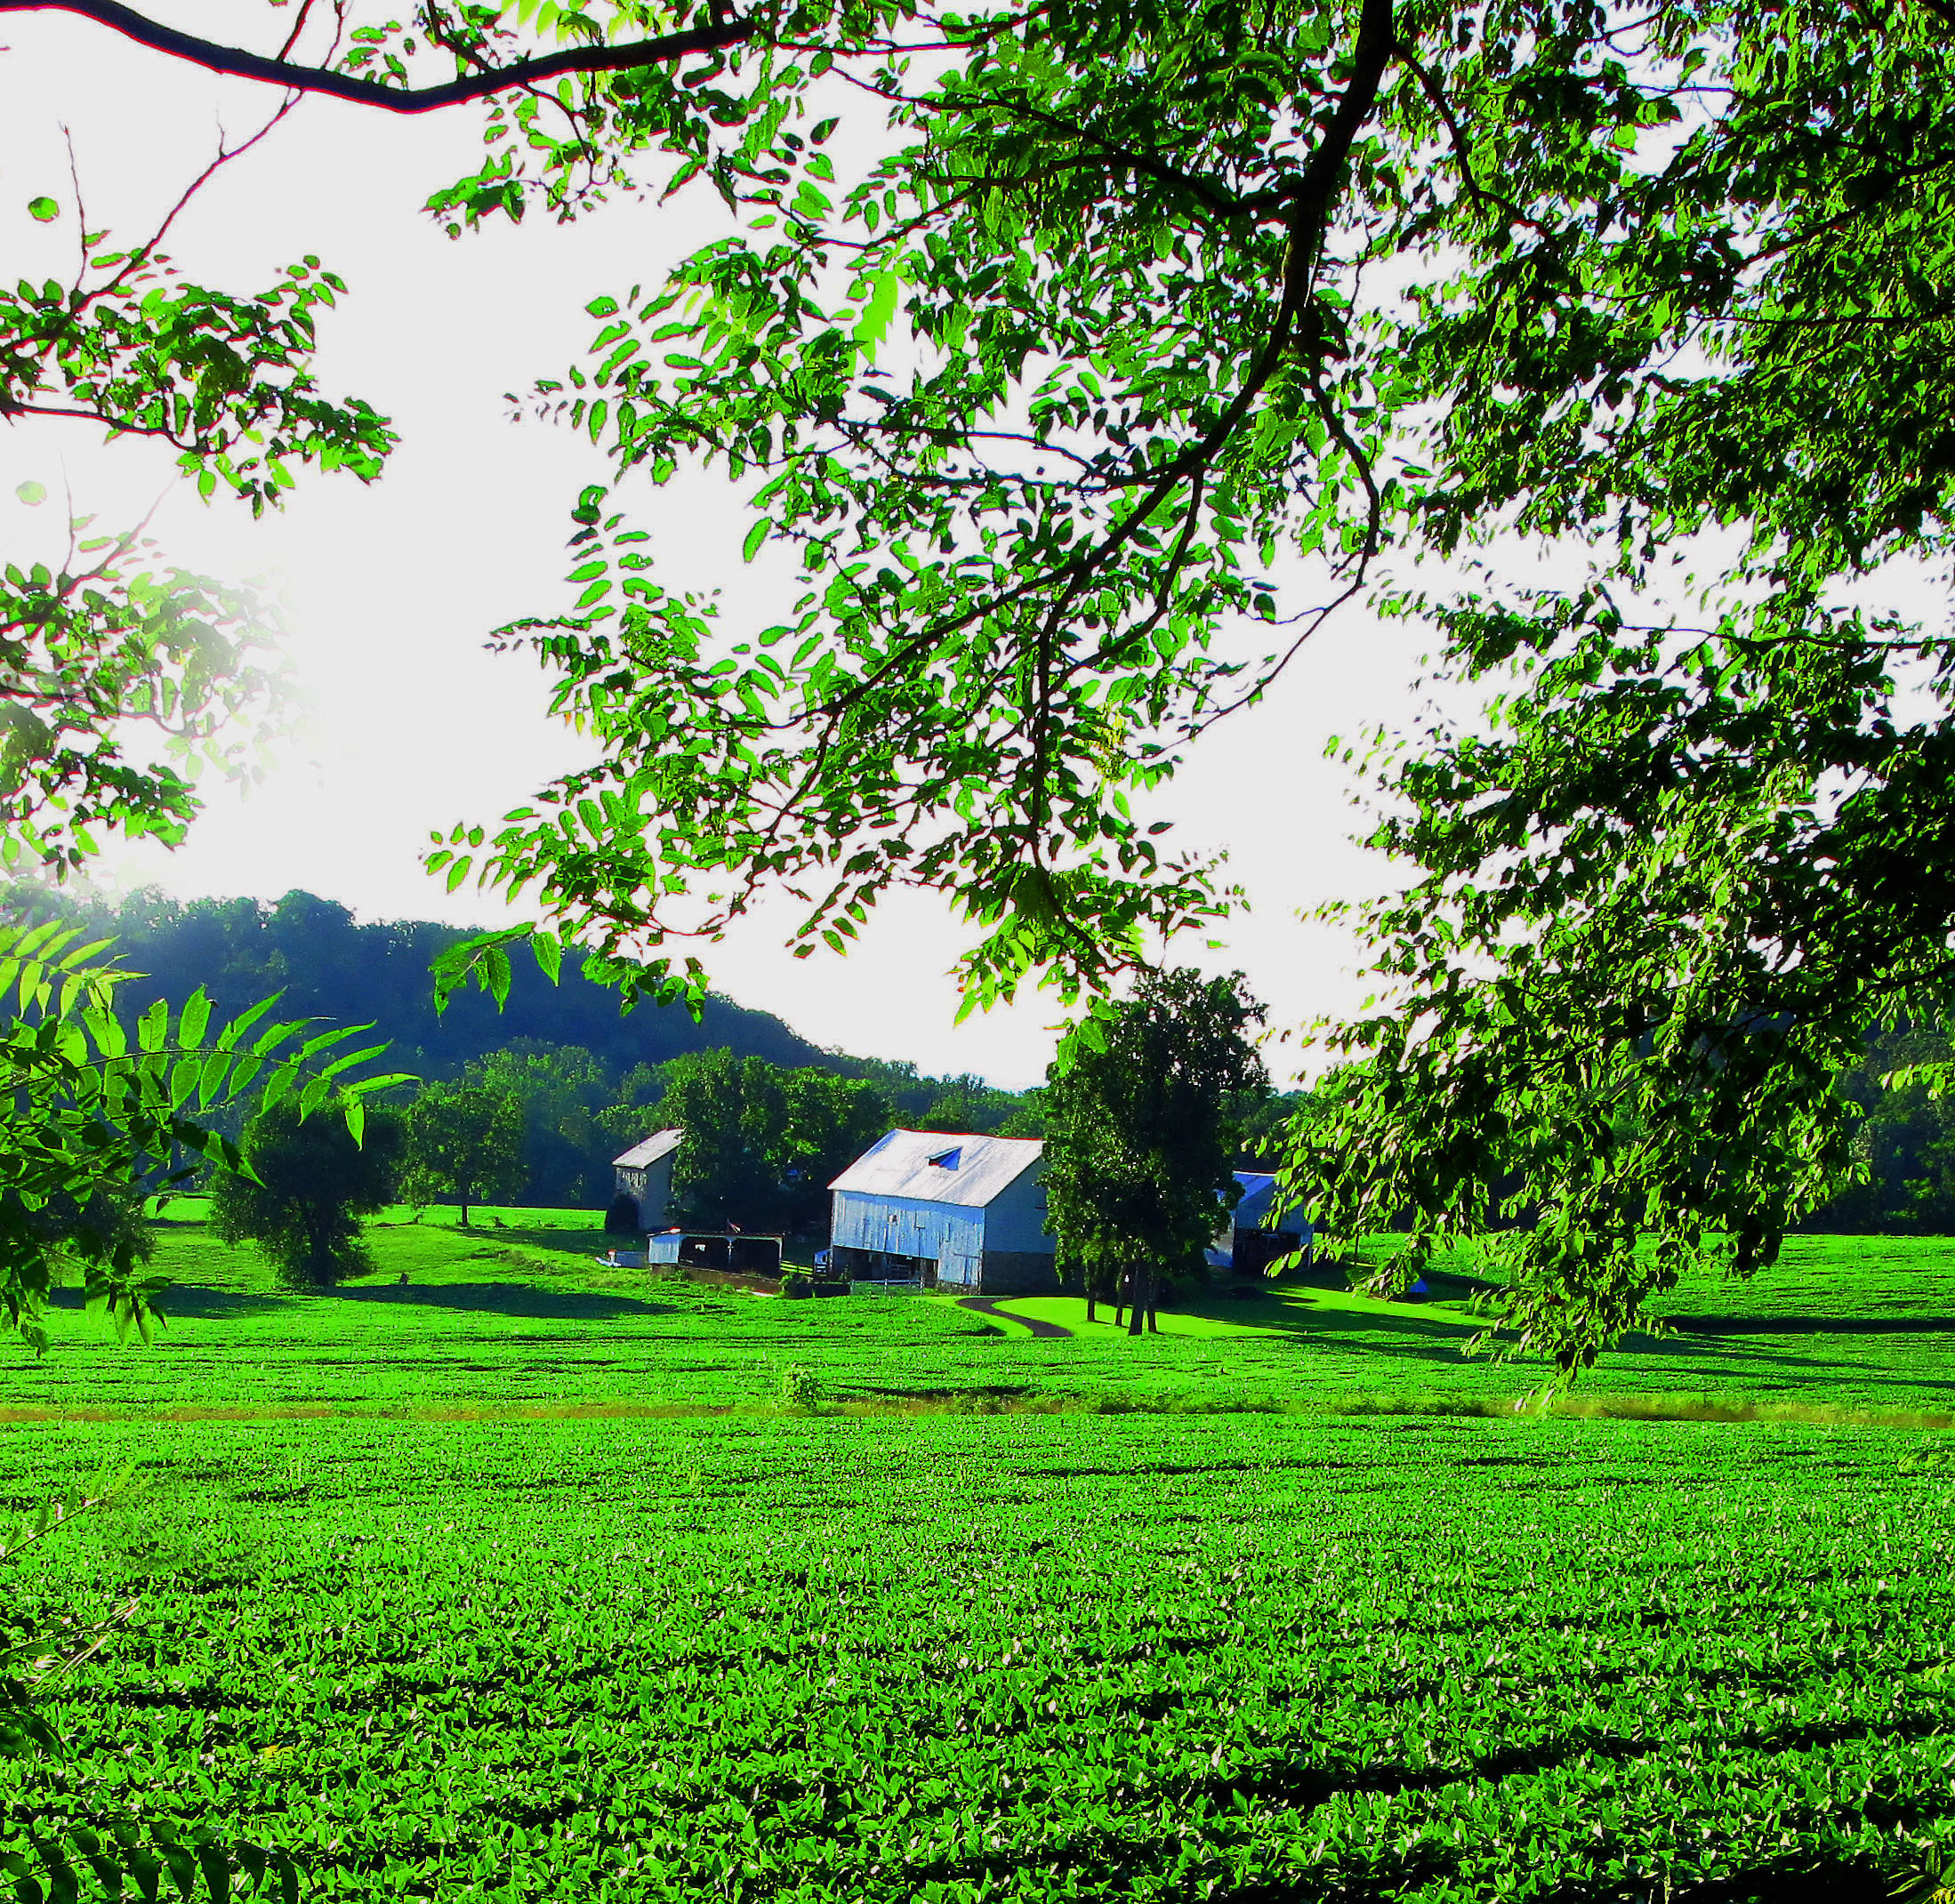 Berks County Farmland